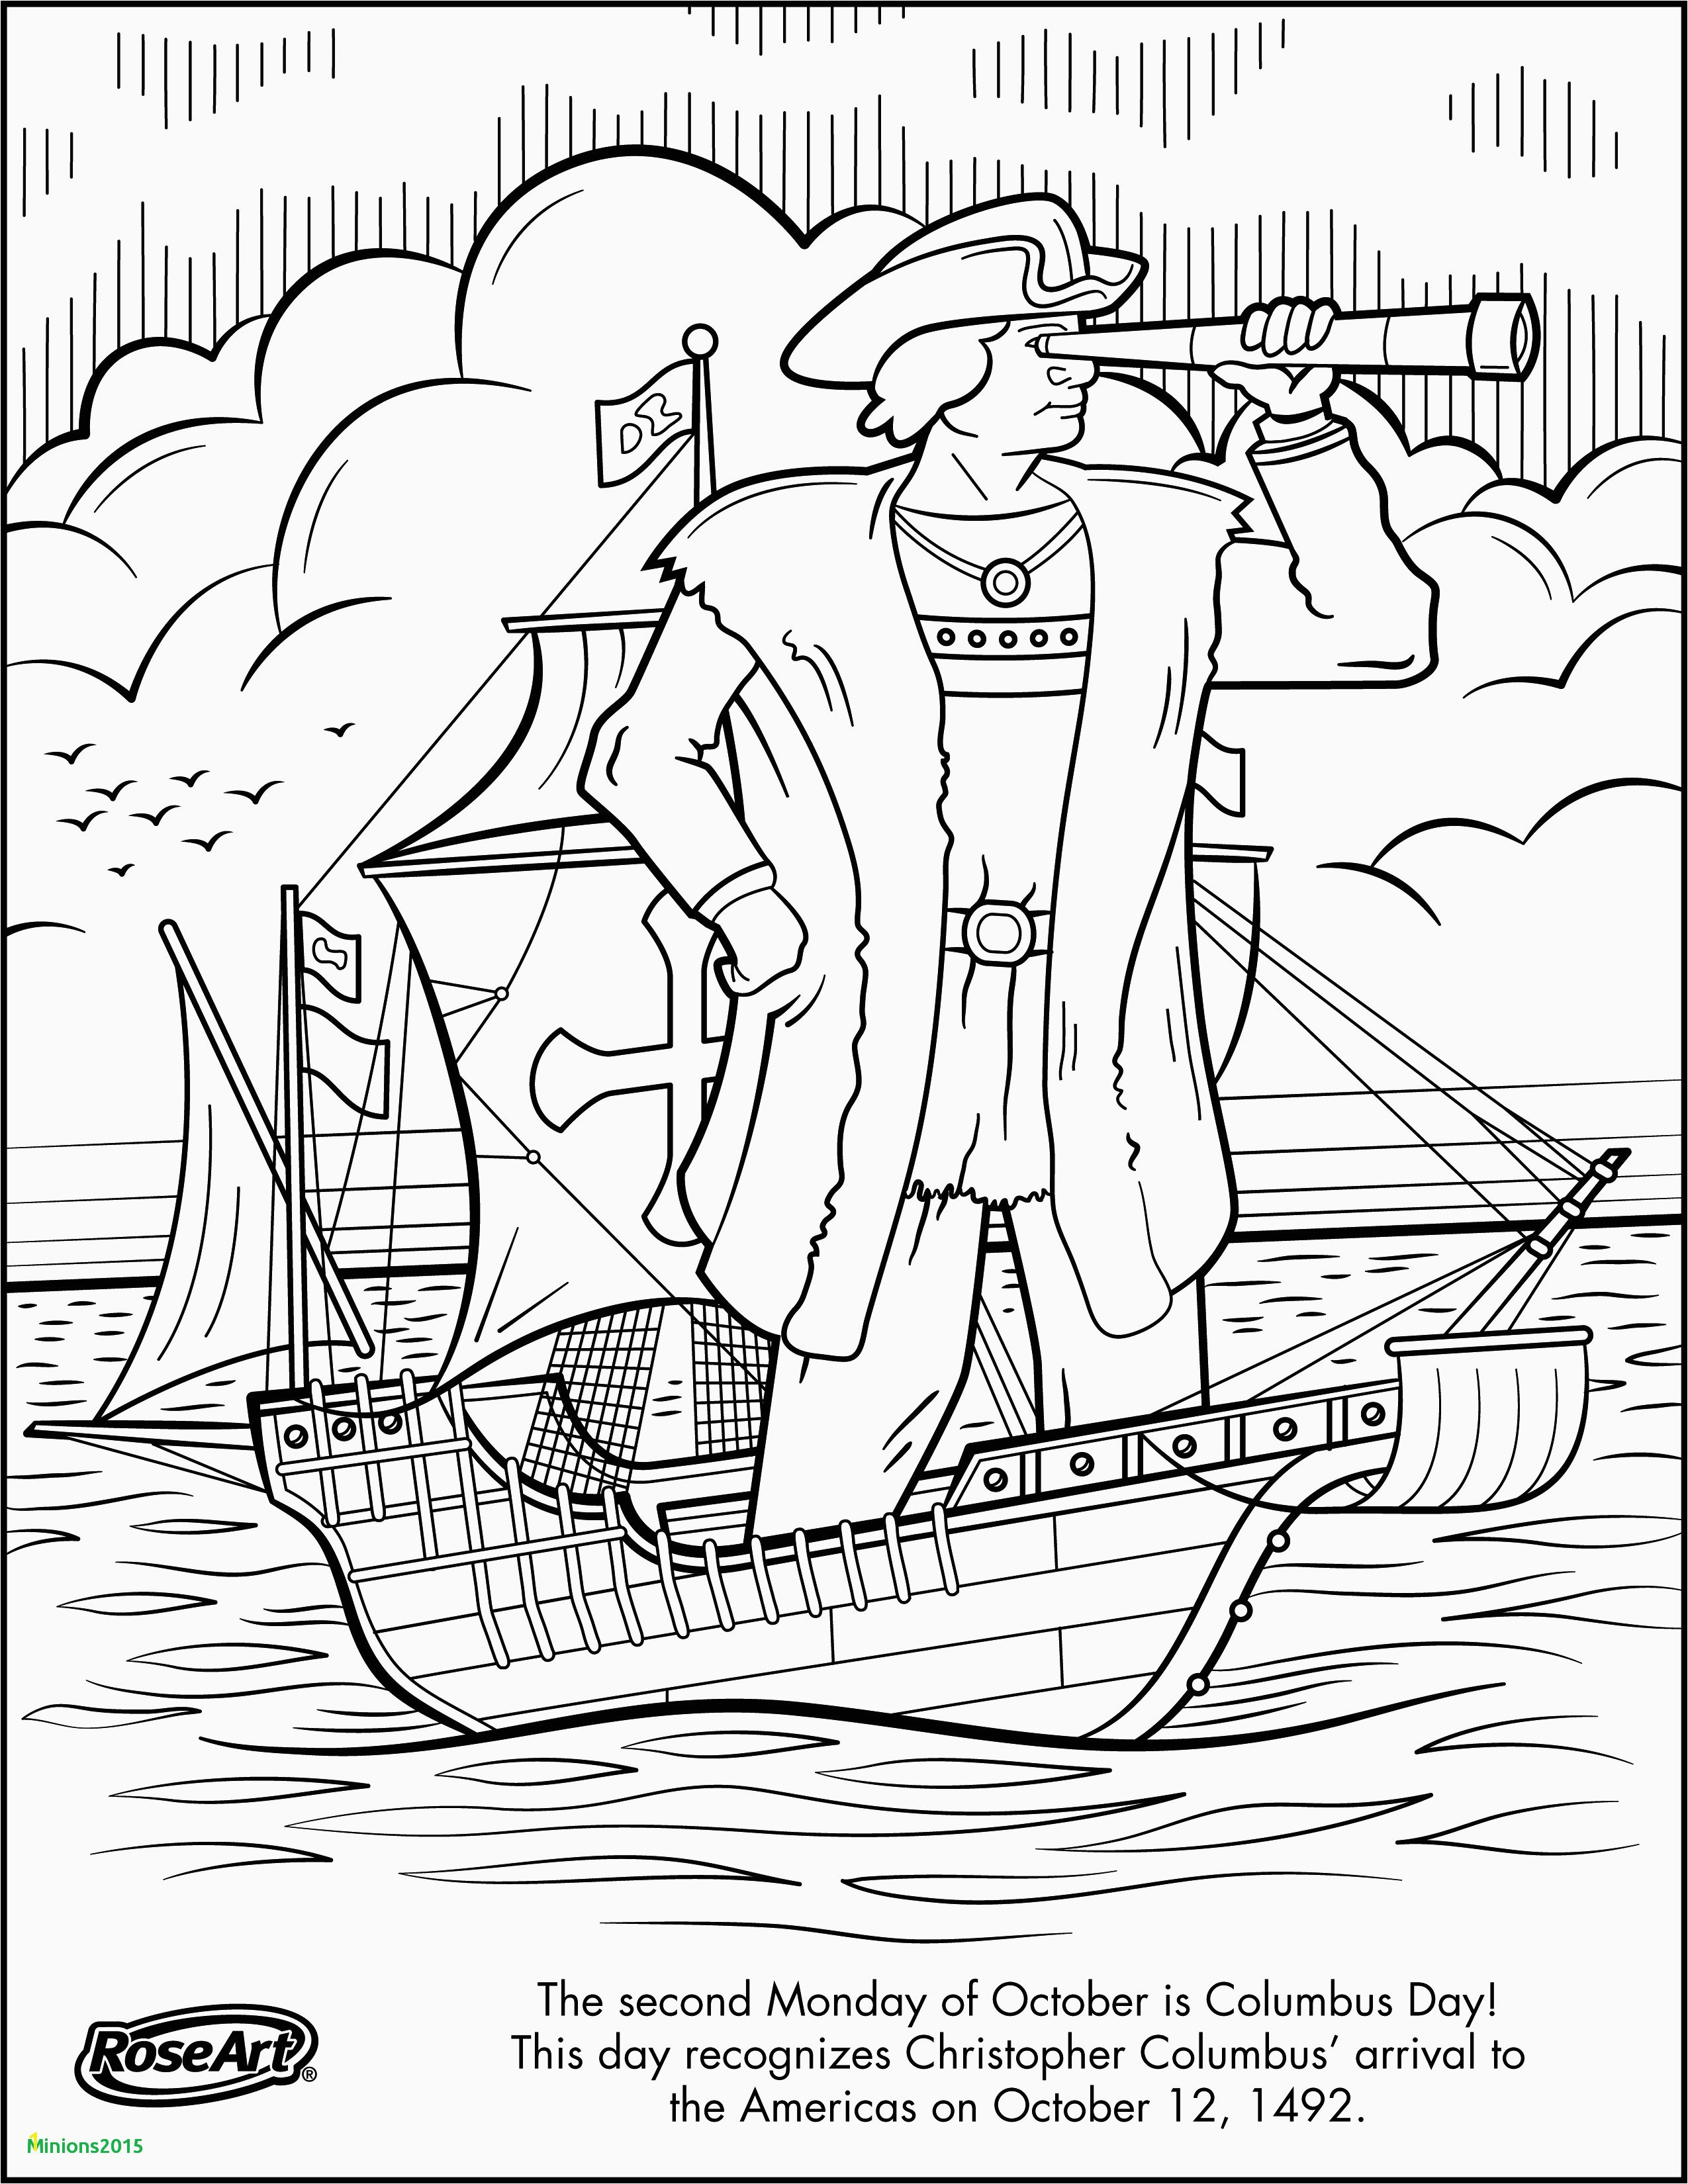 Minions Stuart Drawing Free Minion Coloring Page Fresh Coloring Pages Line New Line Coloring 0d